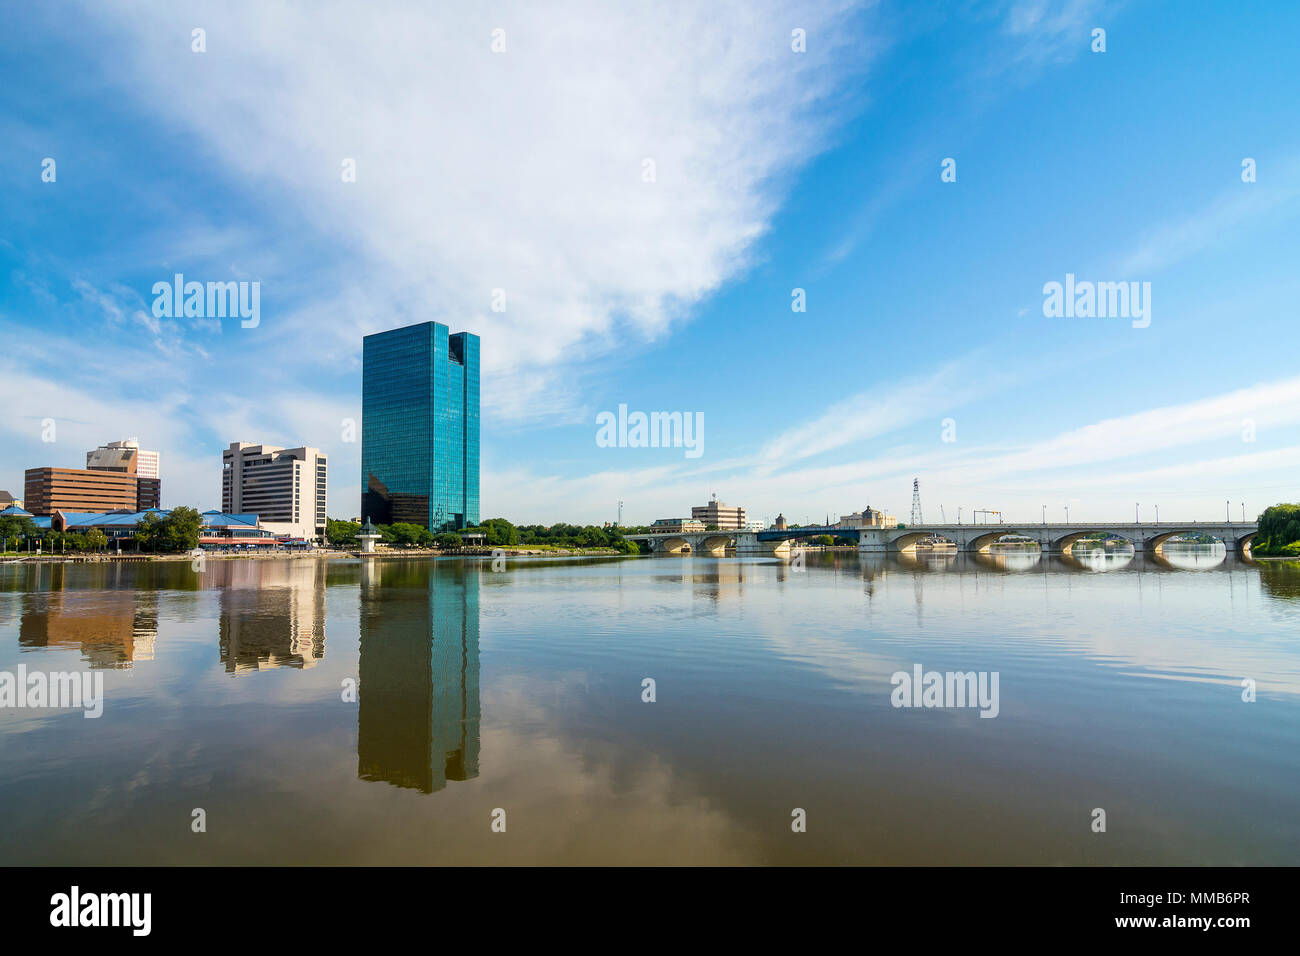 A panoramic view of downtown Toledo Ohio's skyline reflecting into the Maumee River.  A beautiful  blue sky with white clouds for a backdrop. Stock Photo